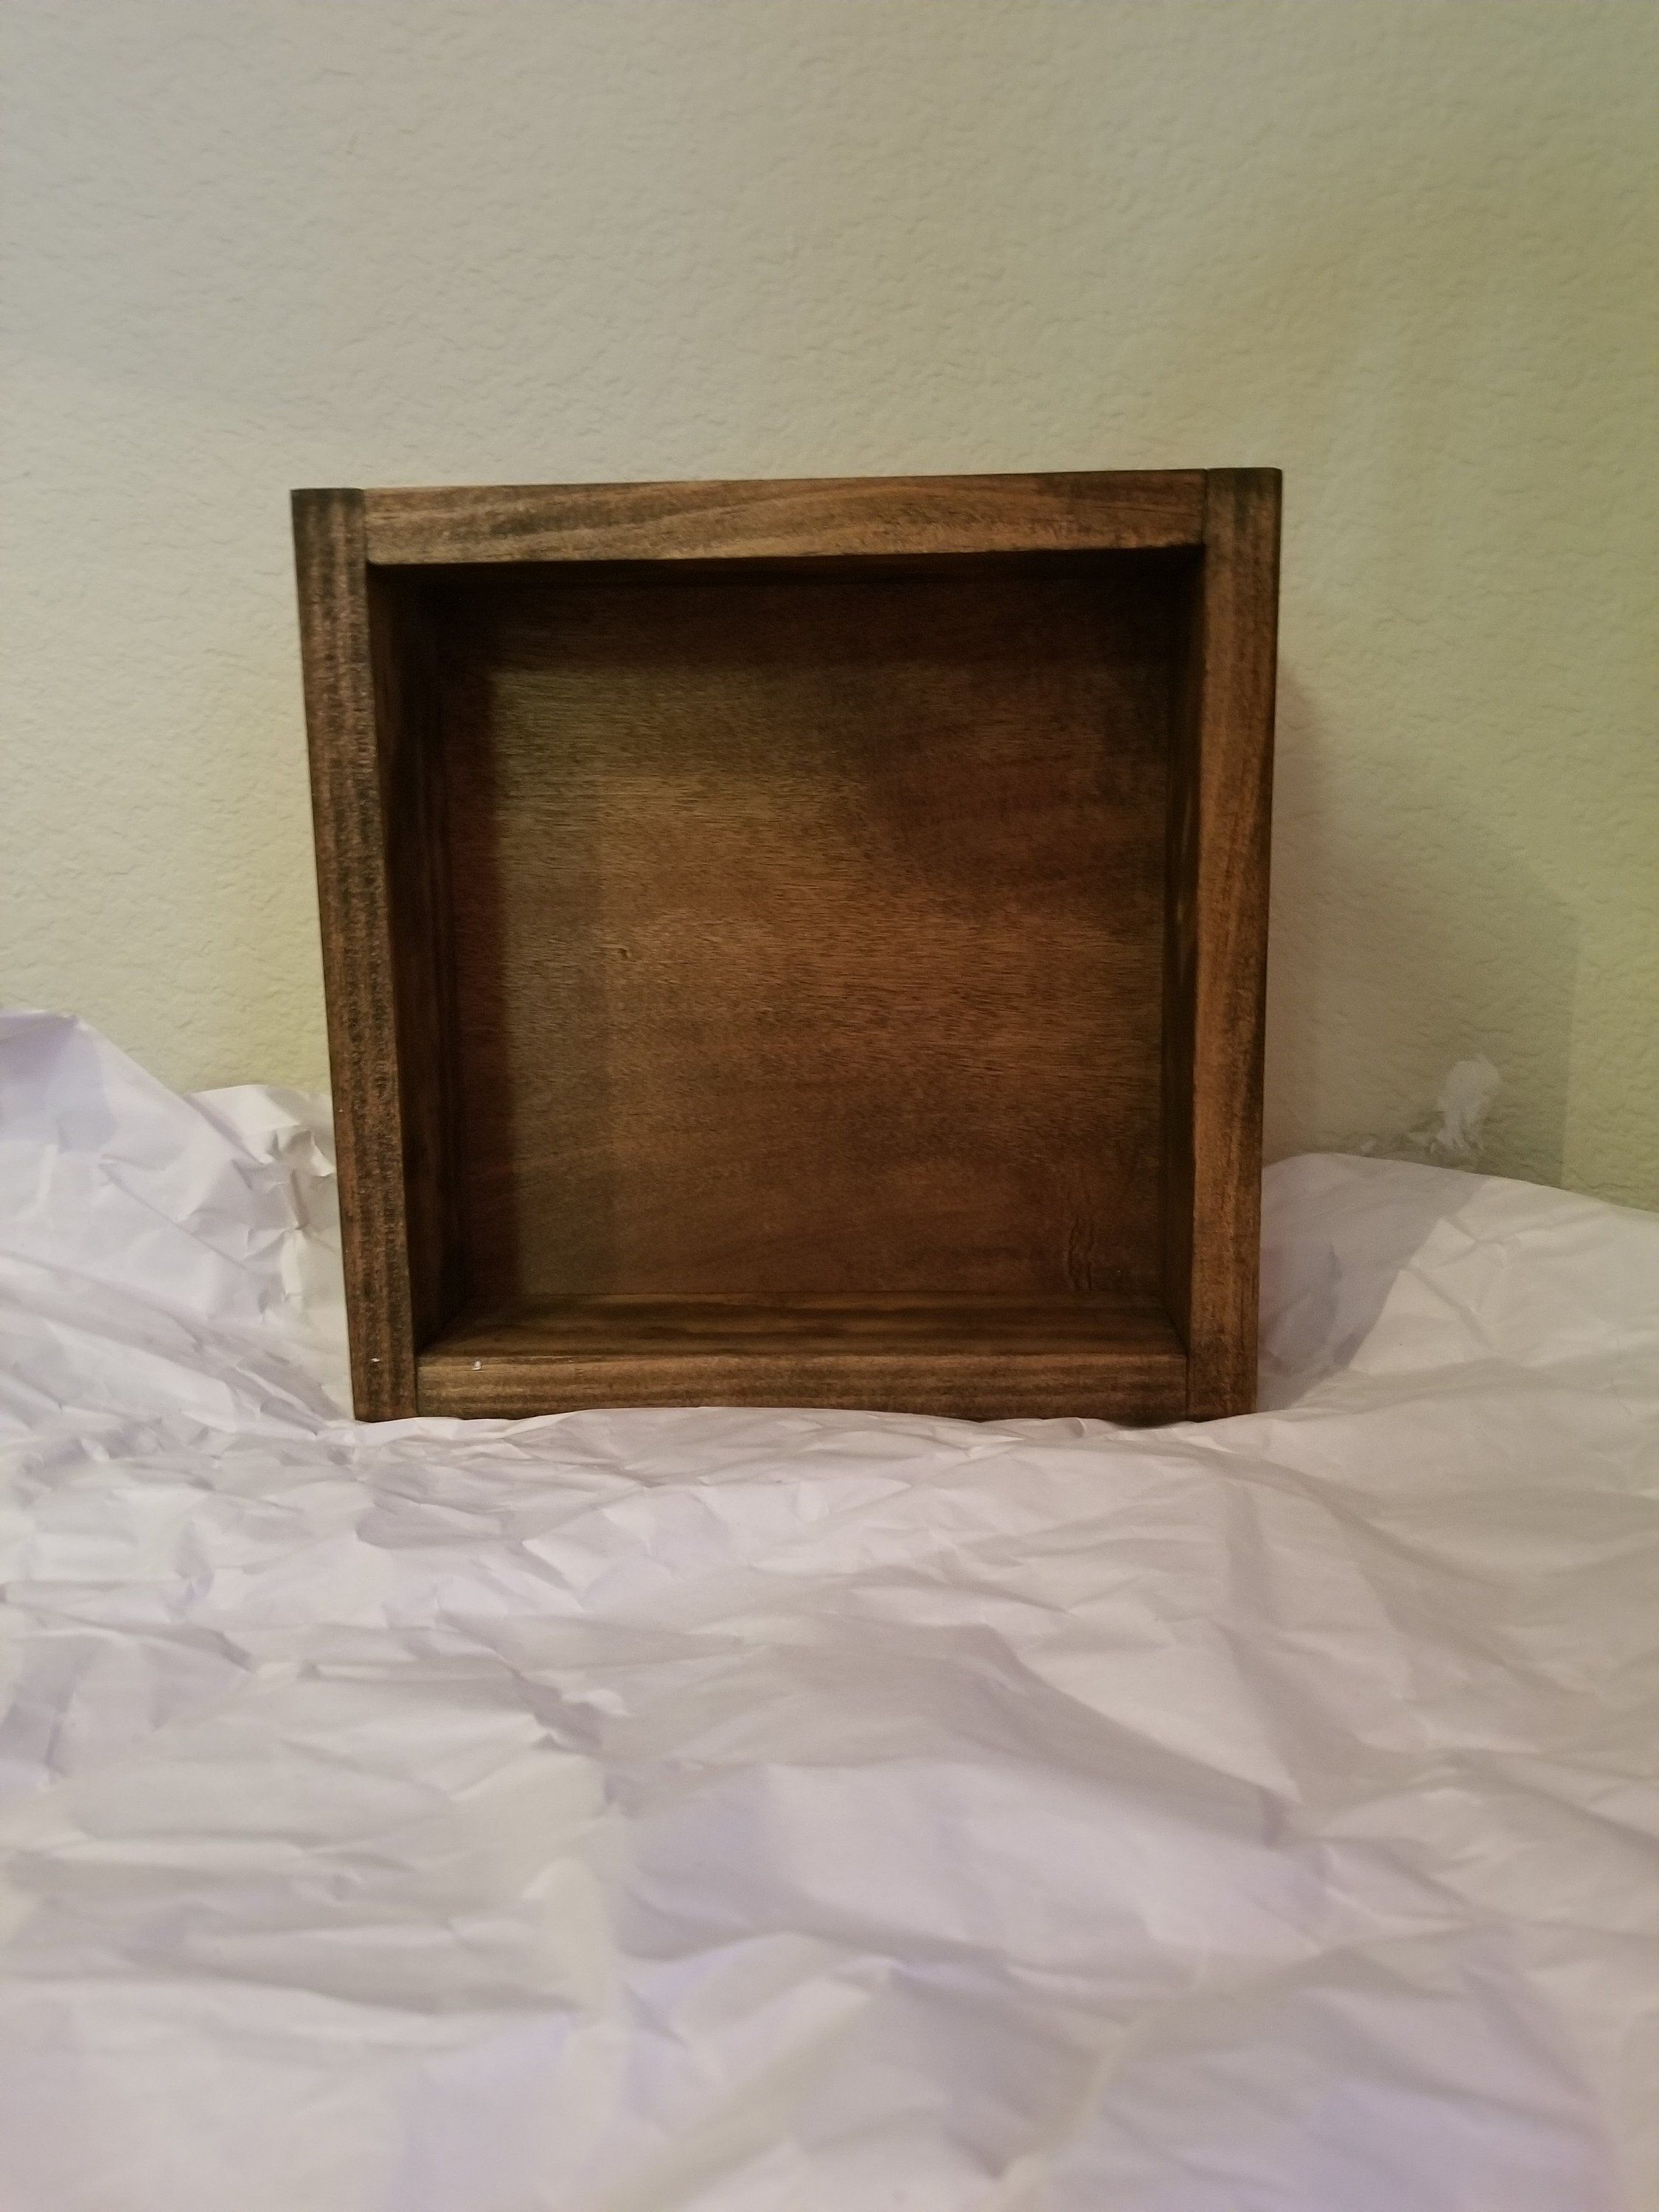 8x8 Handcrafted Wood Shadow Box Display Case Permanent Glass Top Or Hinged Glass Lid Painted Or Stai Shadow Box Display Case Wood Shadow Box Handcrafted Wood